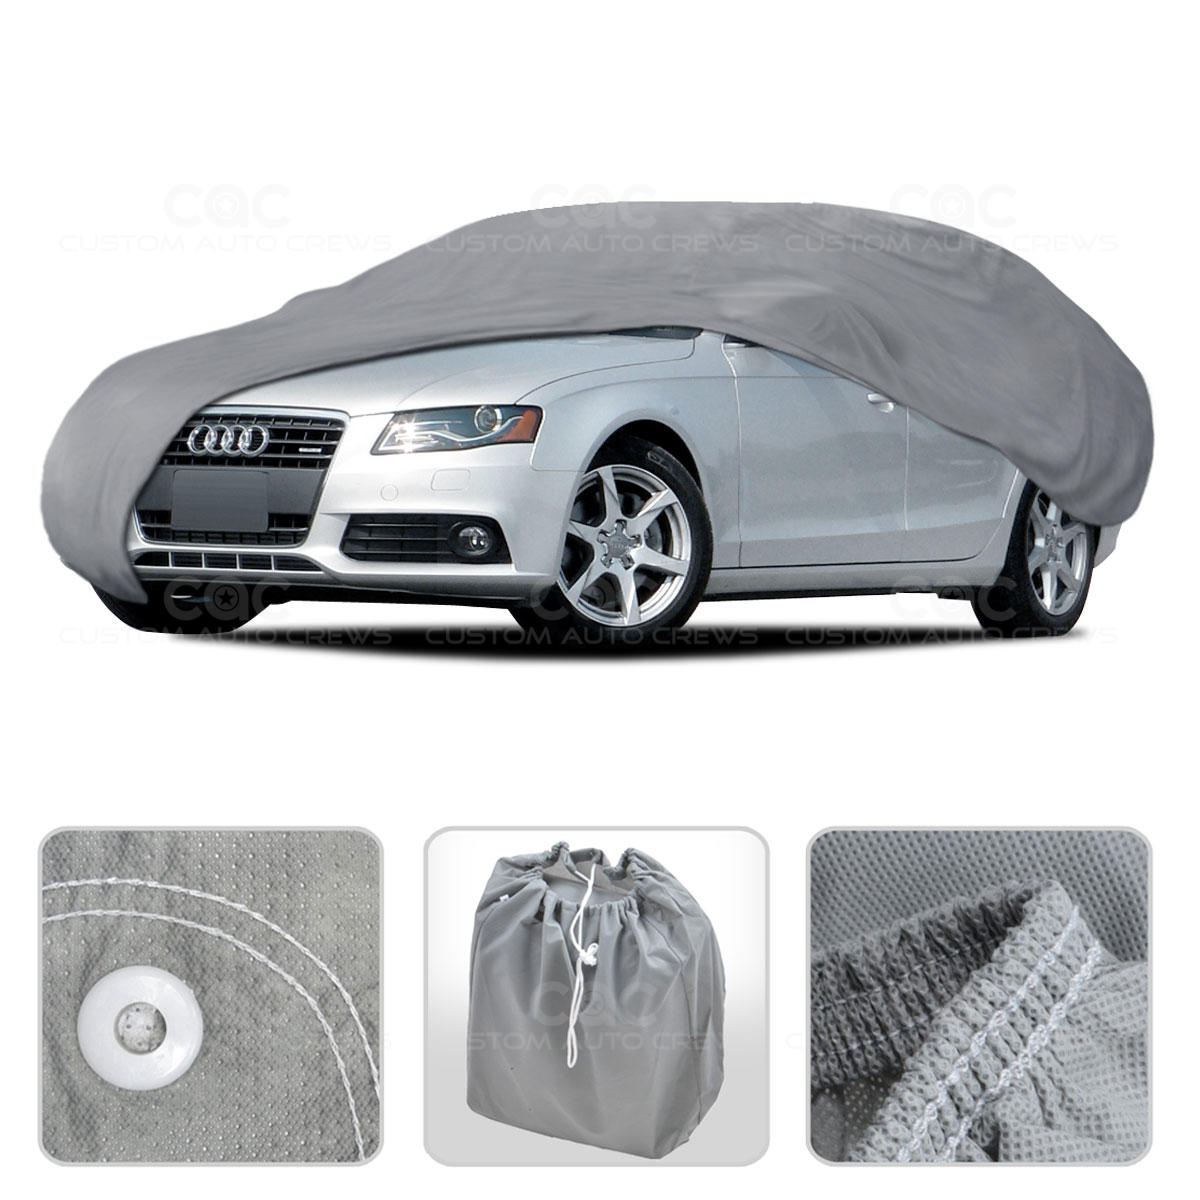 Car Cover For Audi A4 91 14 Outdoor Breathable Sun Dust